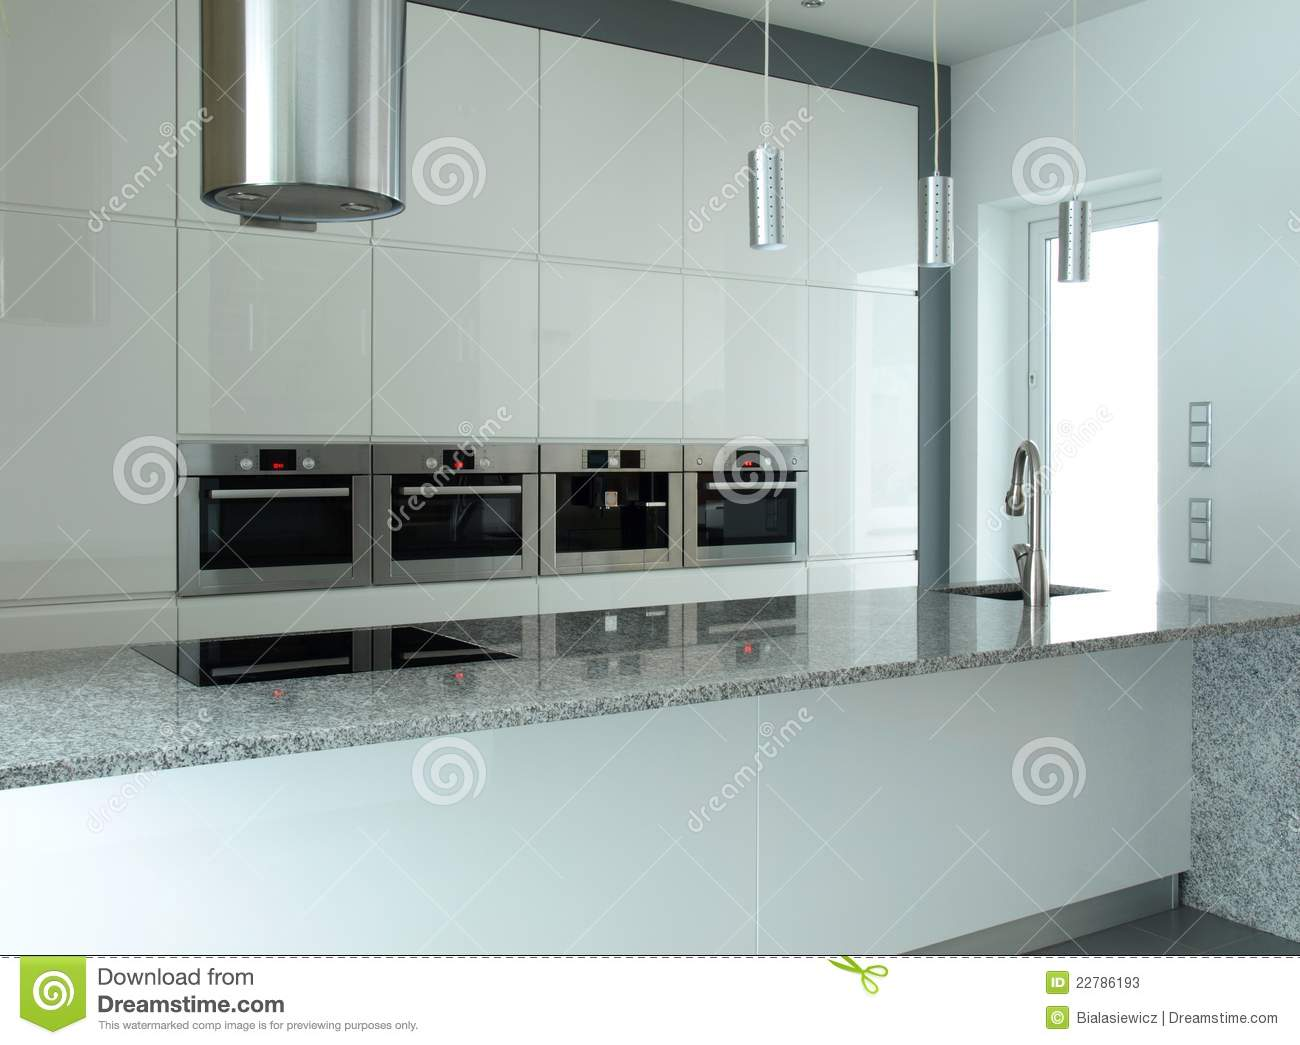 Uncategorized Fitted Kitchen Appliances white kitchen with built in appliances stock photos image 22786193 countertop granite grey kitchen